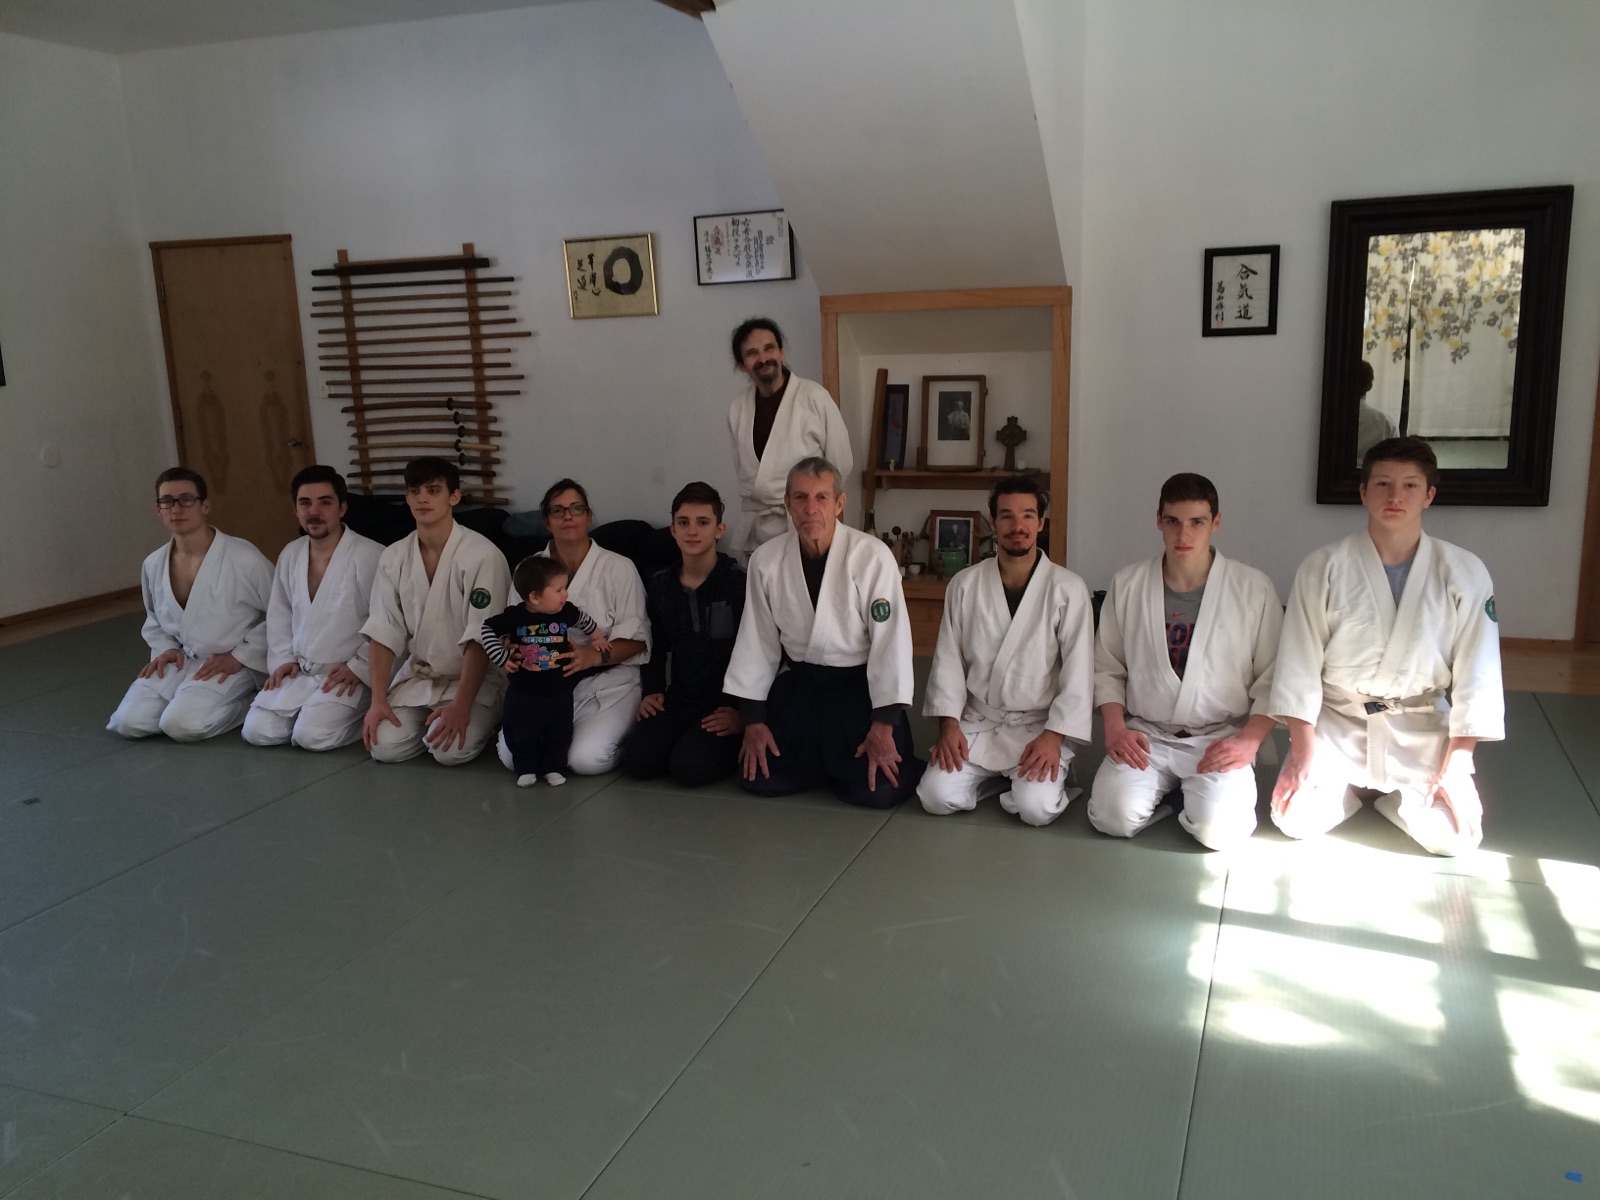 At our home dojo